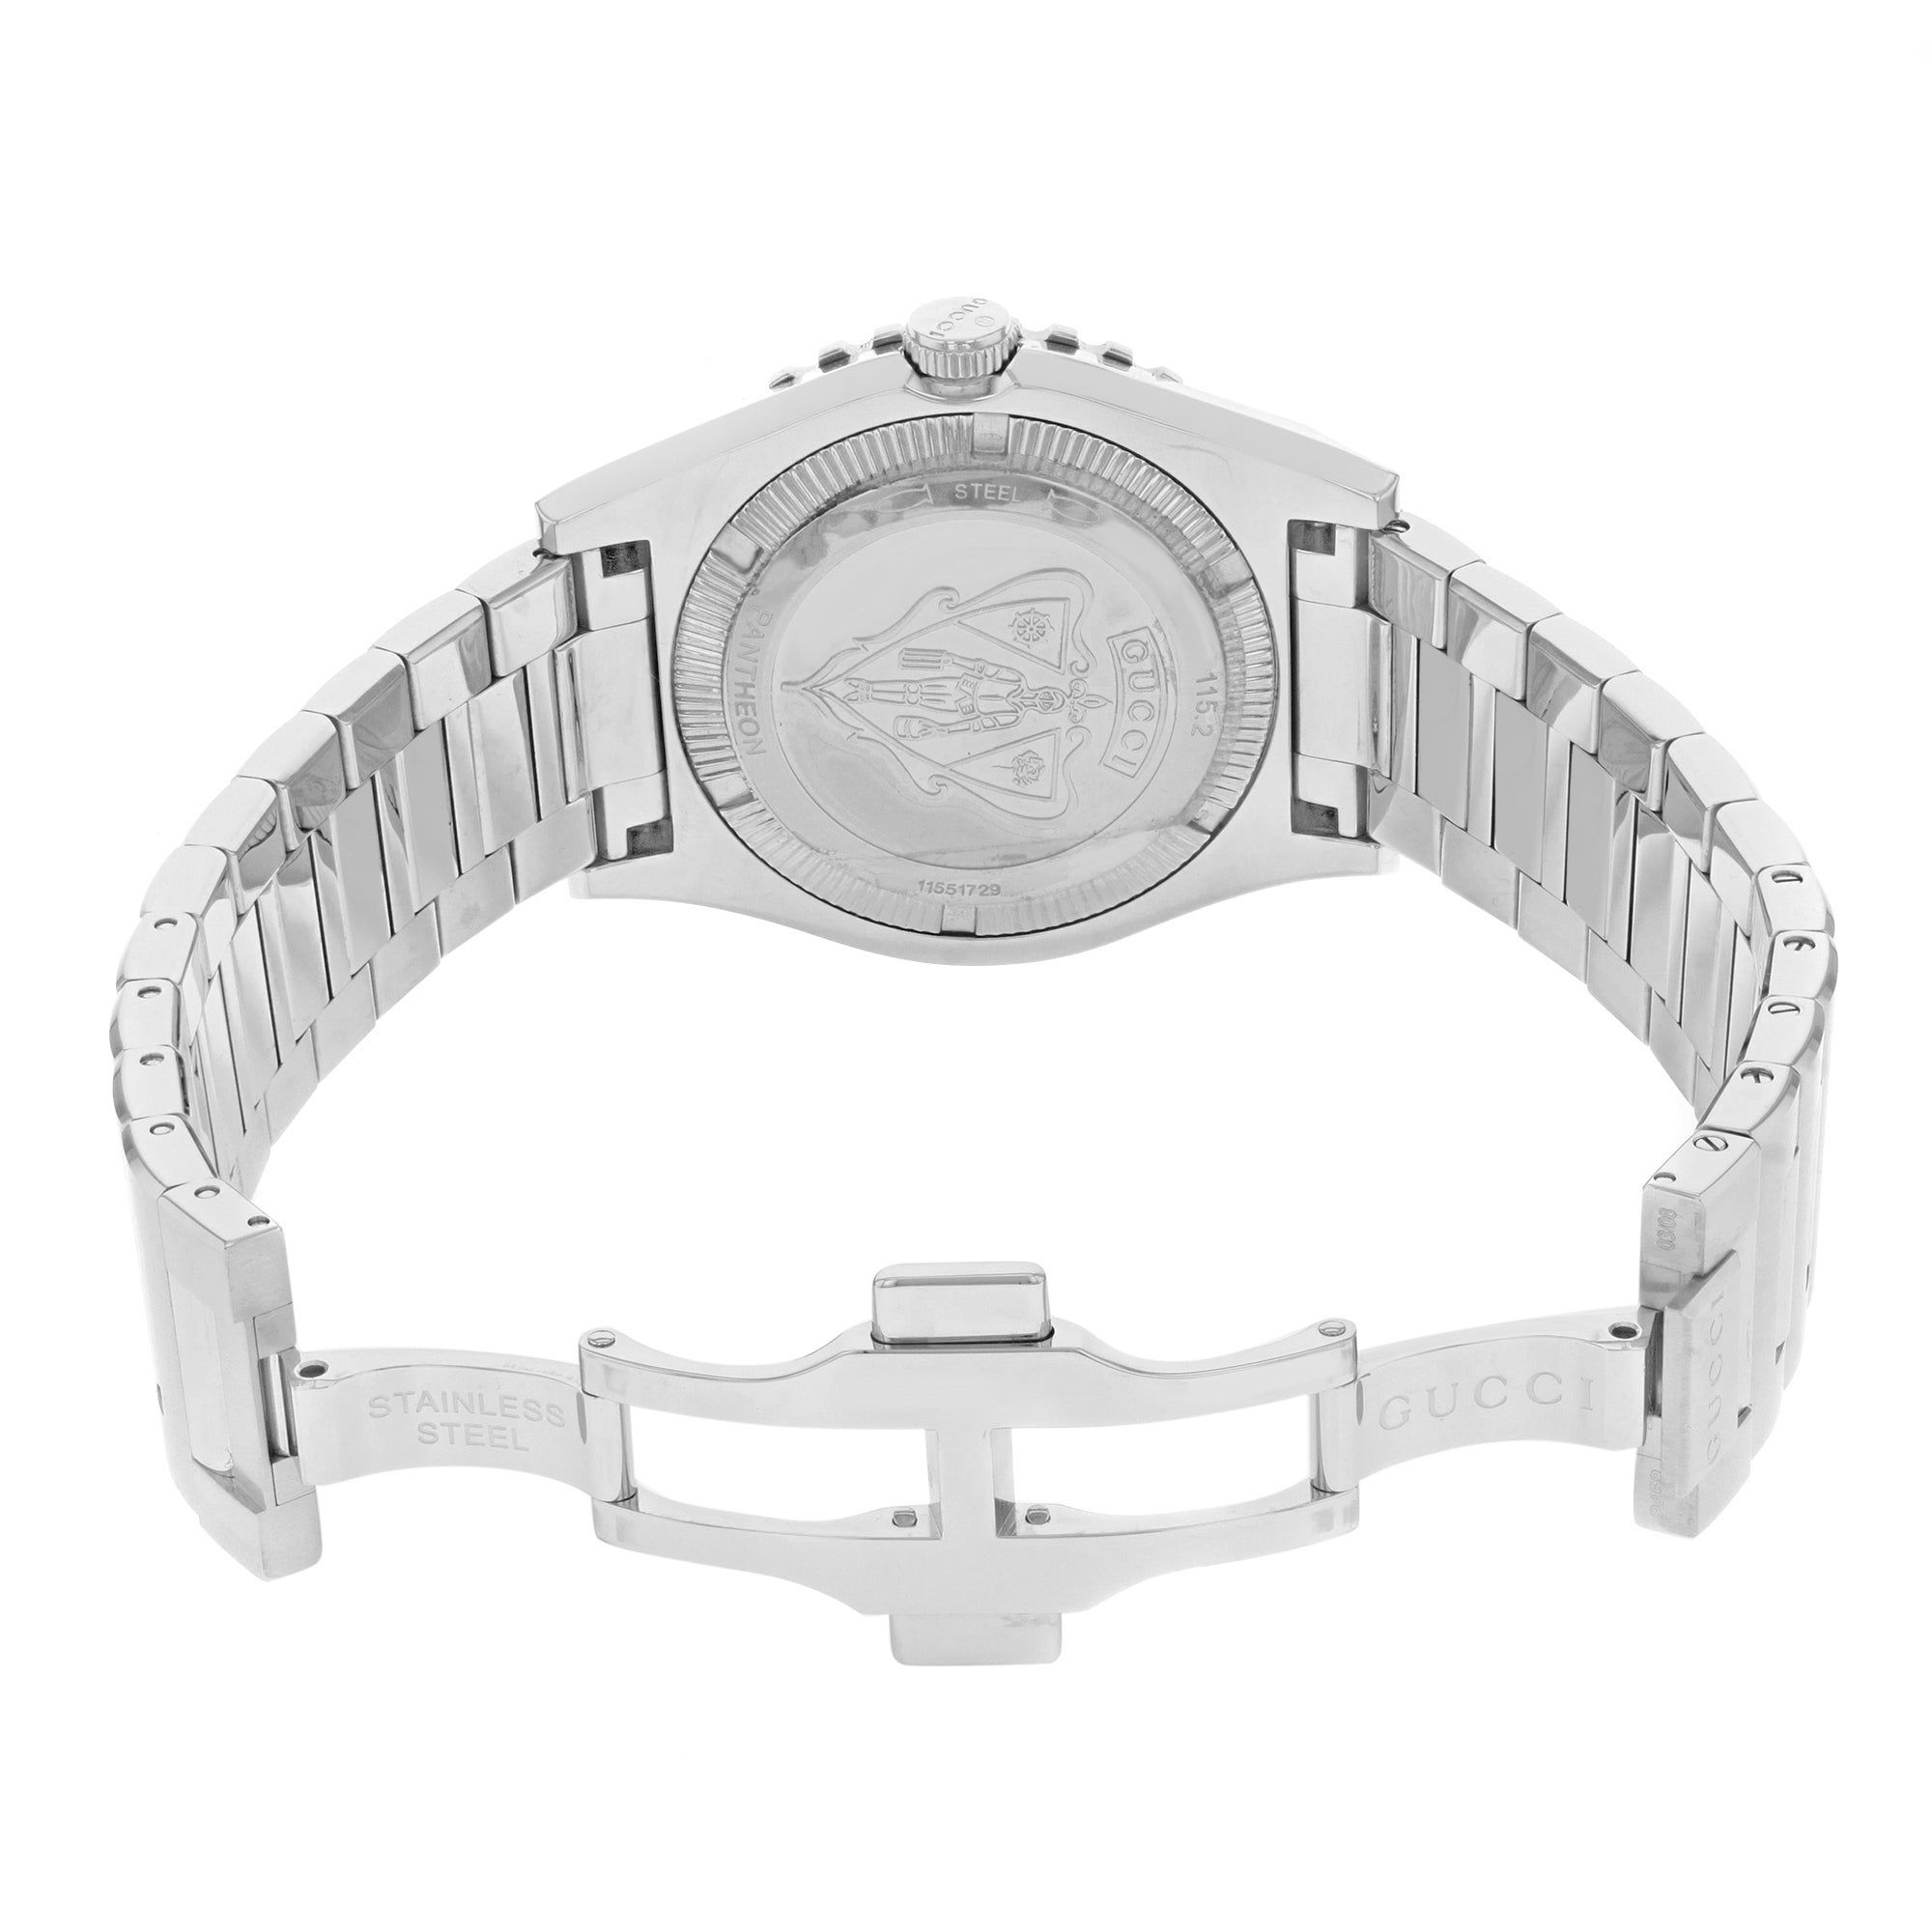 8c52a85fd99 Shop Gucci 115 Pantheon YA115211 Stainless Steel Automatic Men s Watch -  Free Shipping Today - Overstock - 17669139